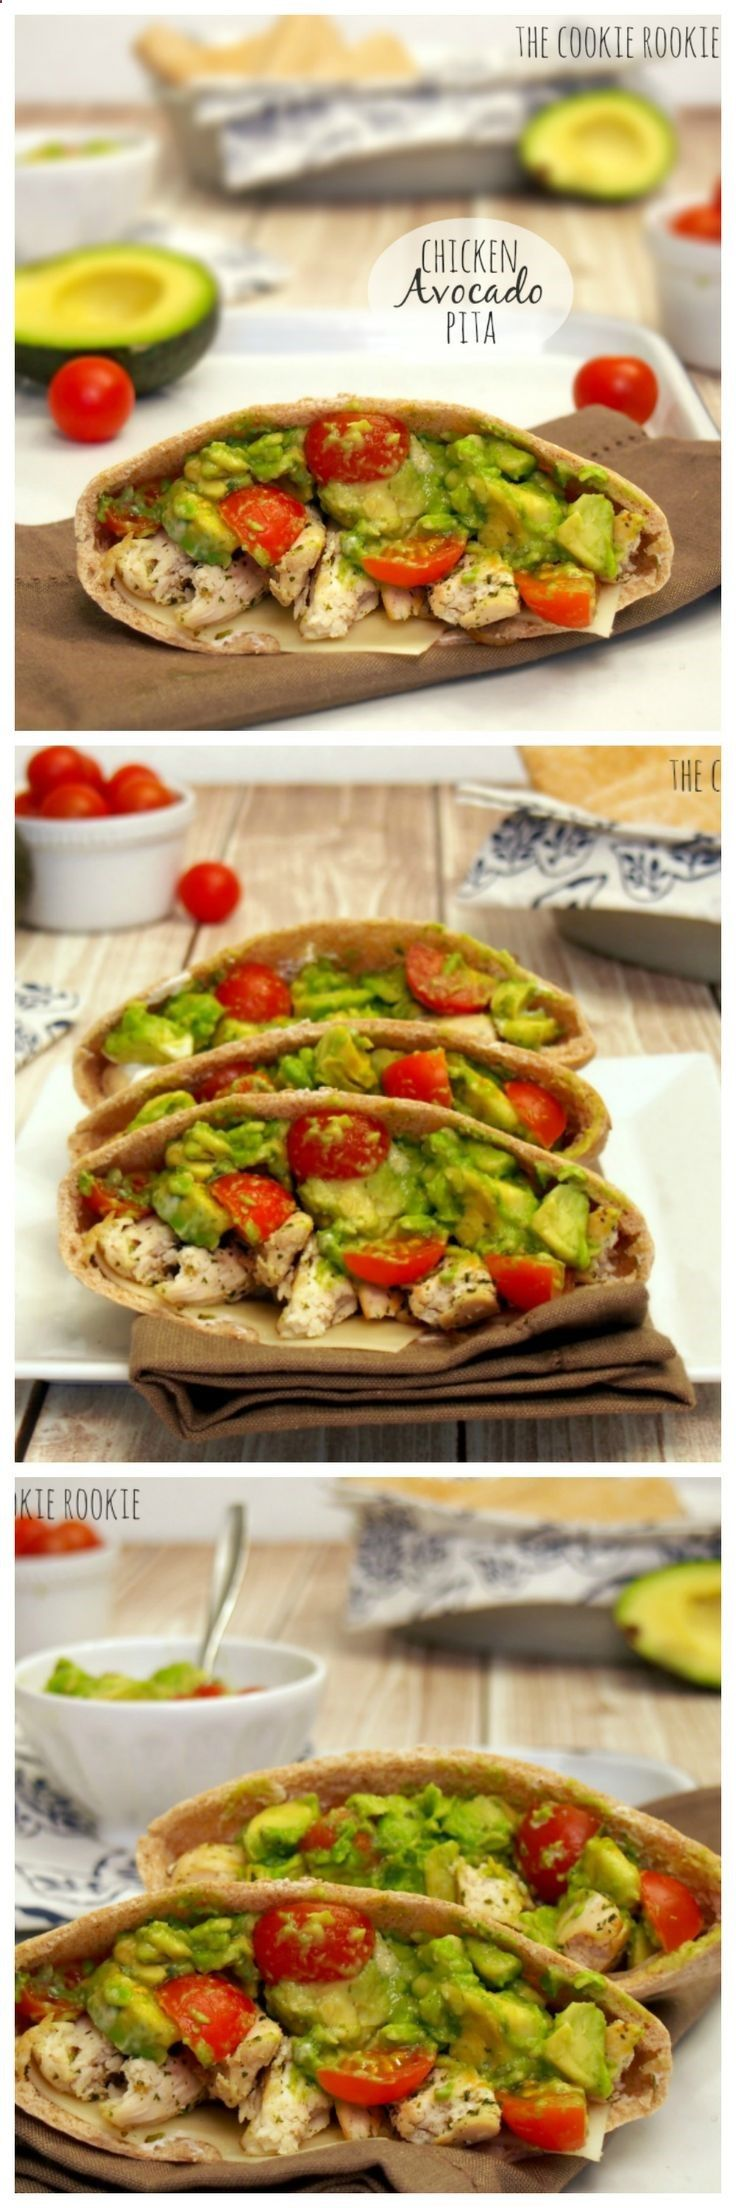 Chicken avocado pita